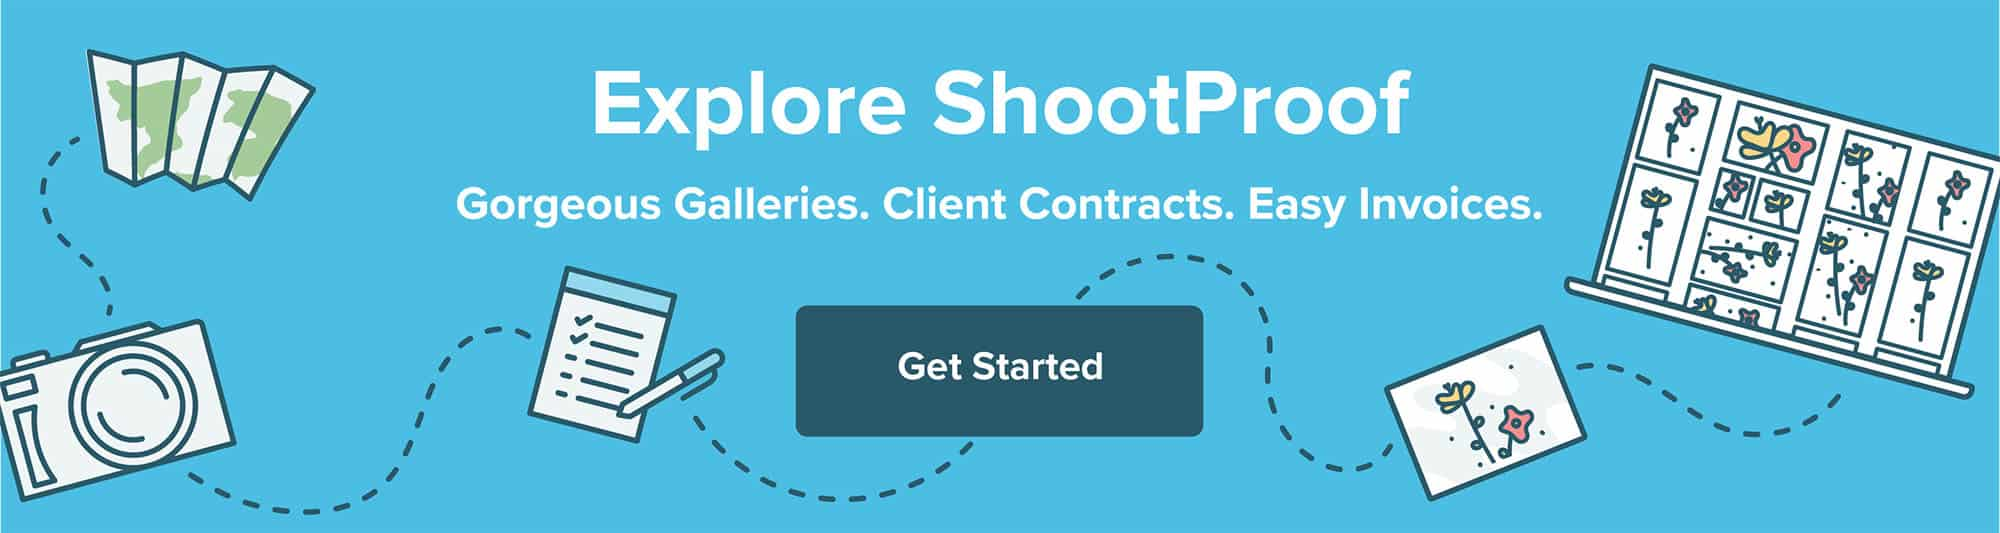 Sign up for ShootProof and get gorgeous client galleries, online contracts, and easy-to-pay invoices for as little as $10 per month!